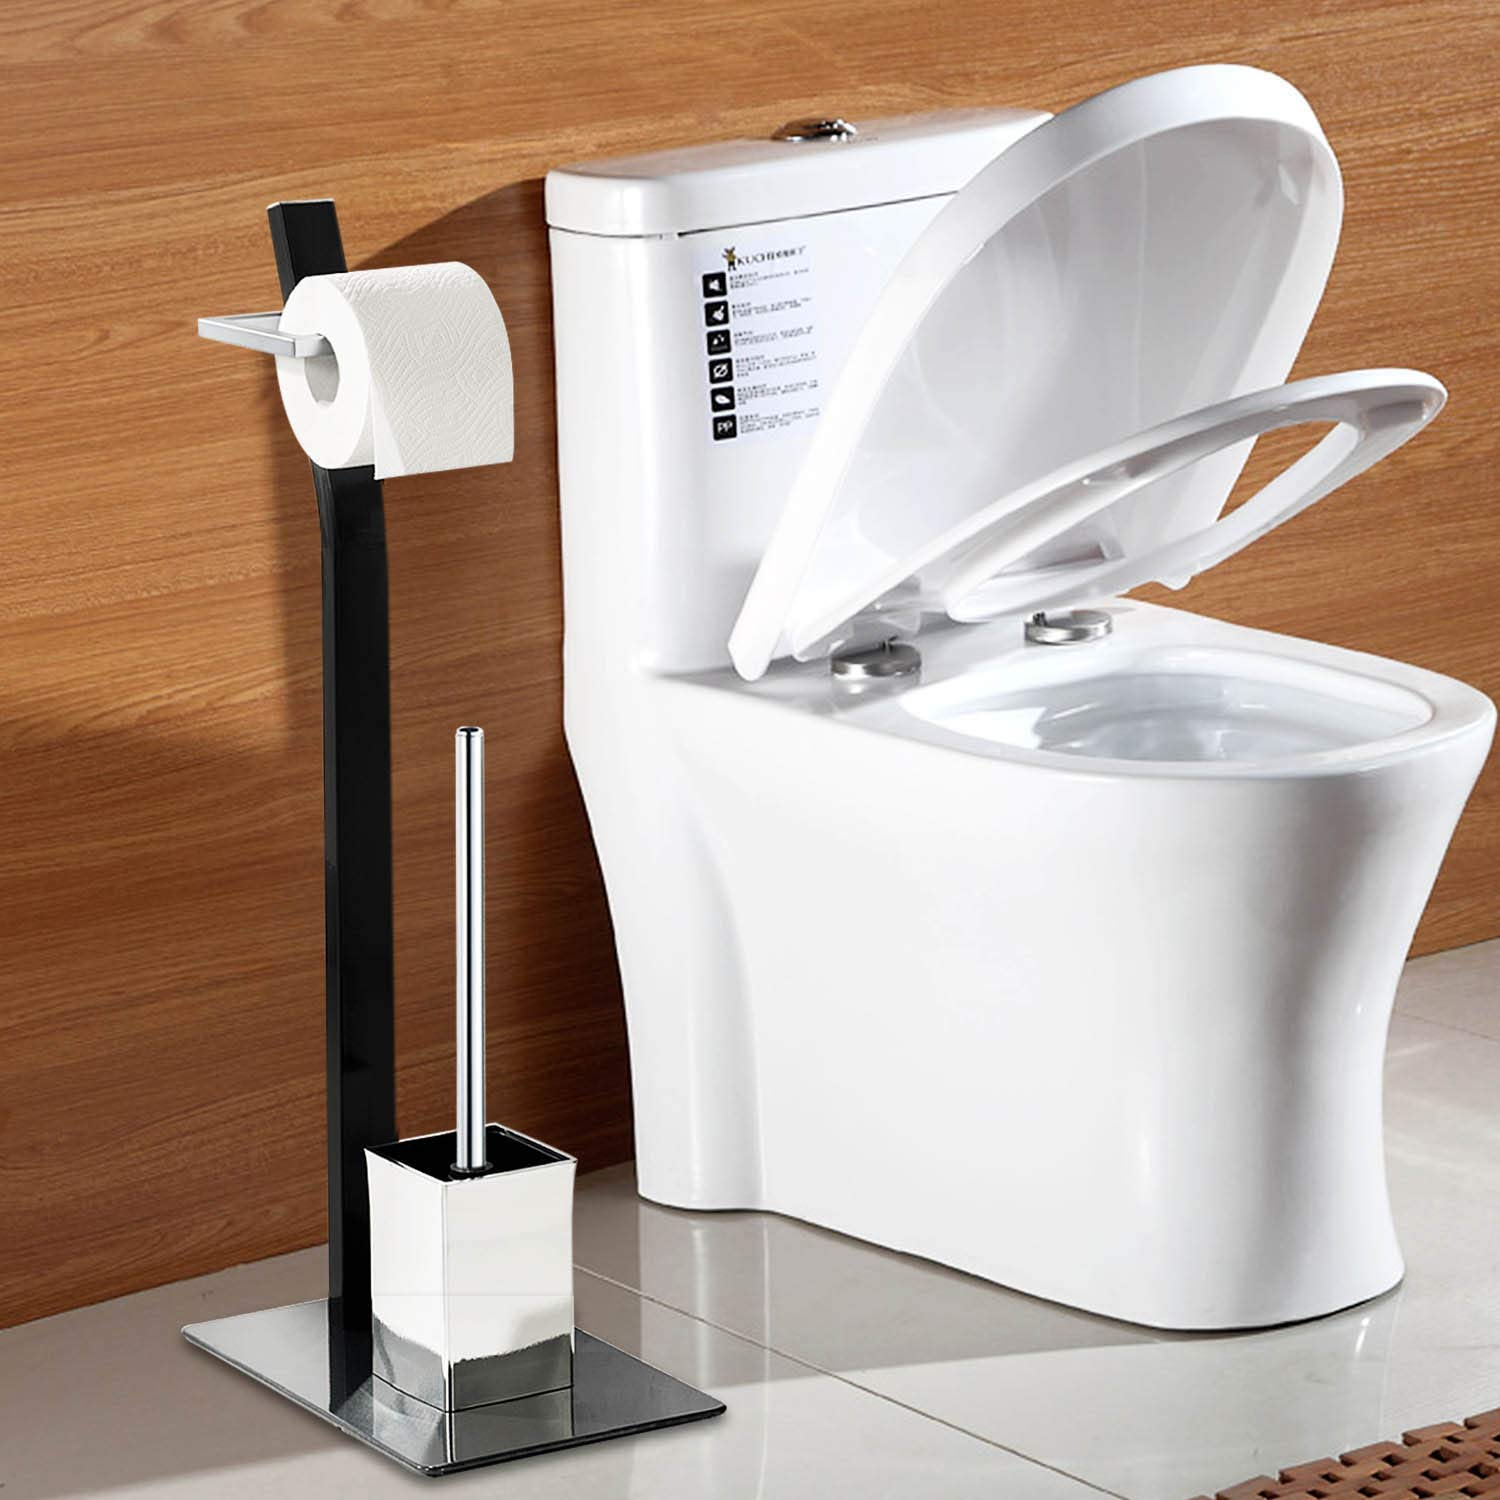 Free Standing Toilet Paper Holder Black Tissue Industrial Bathroom Toilet Brush And Holder Set Stand Silver